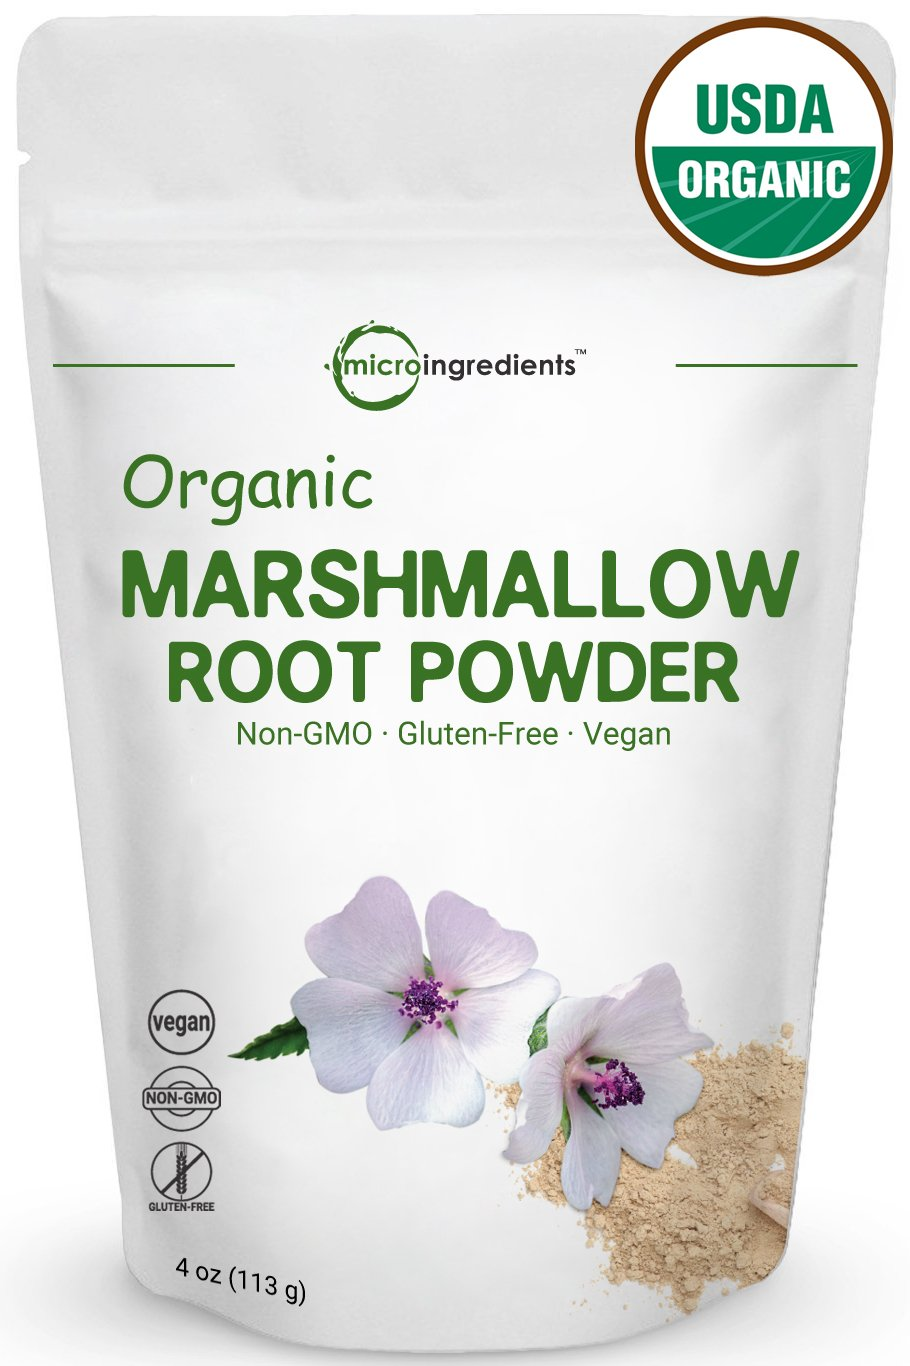 Premiun Pure Organic Marshmallow Root Powder, 4 oz. Non-GMO, Support Healthy Gut & Lung Function